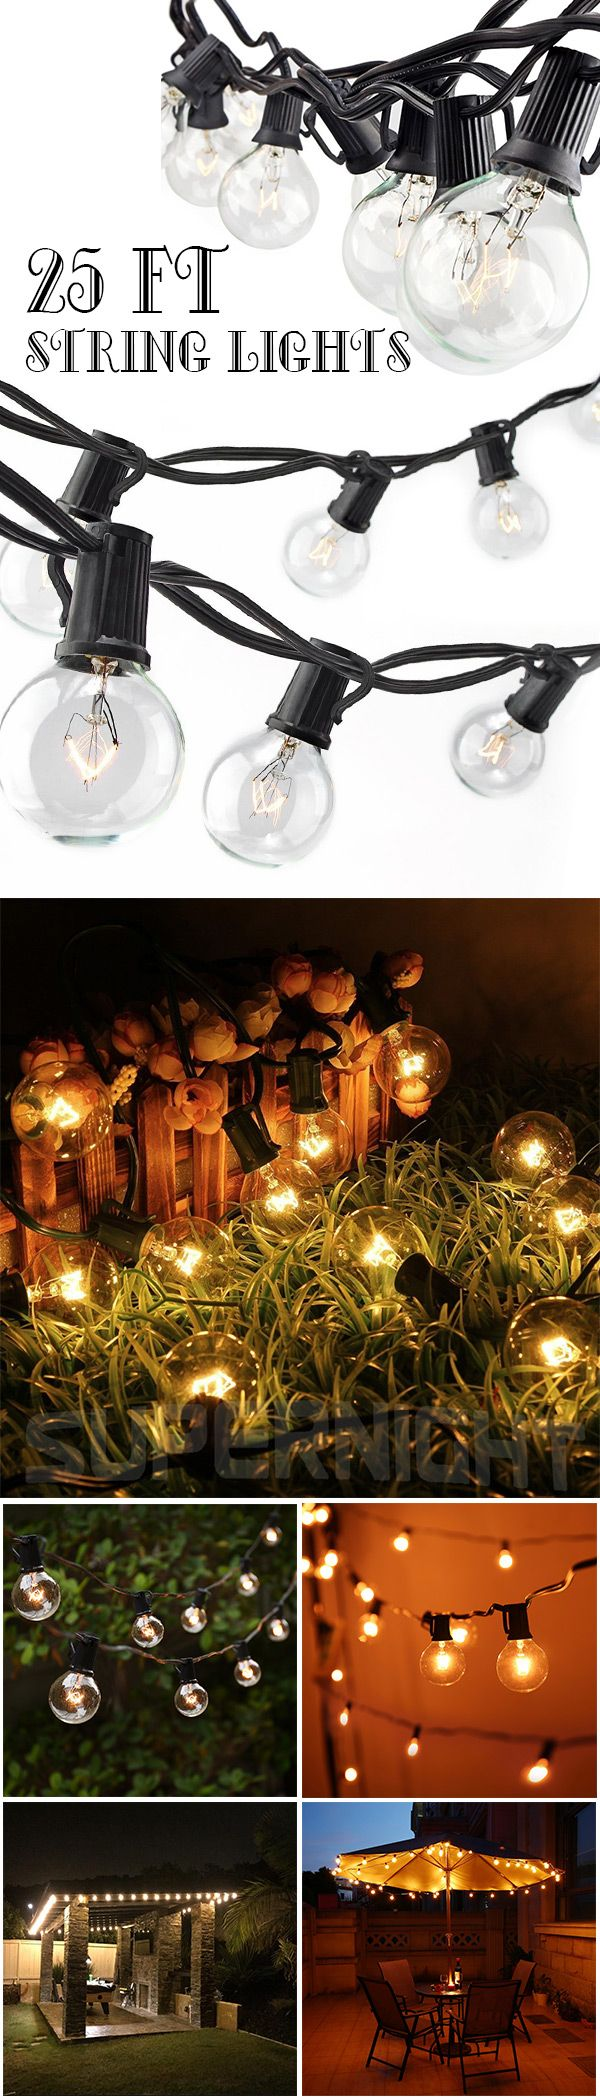 Love twinkling Christmas lights on your tree? Well, string lights can be way more than holiday decorations for you tree. Check out these awesome ways to use Christmas lights and make your home more festive than you ever thought possible. Perfect for DIY holiday decor, some of these cool ideas work~Click the Picture or VIsit button you will get one cool gadgets:)#string#light#lamp